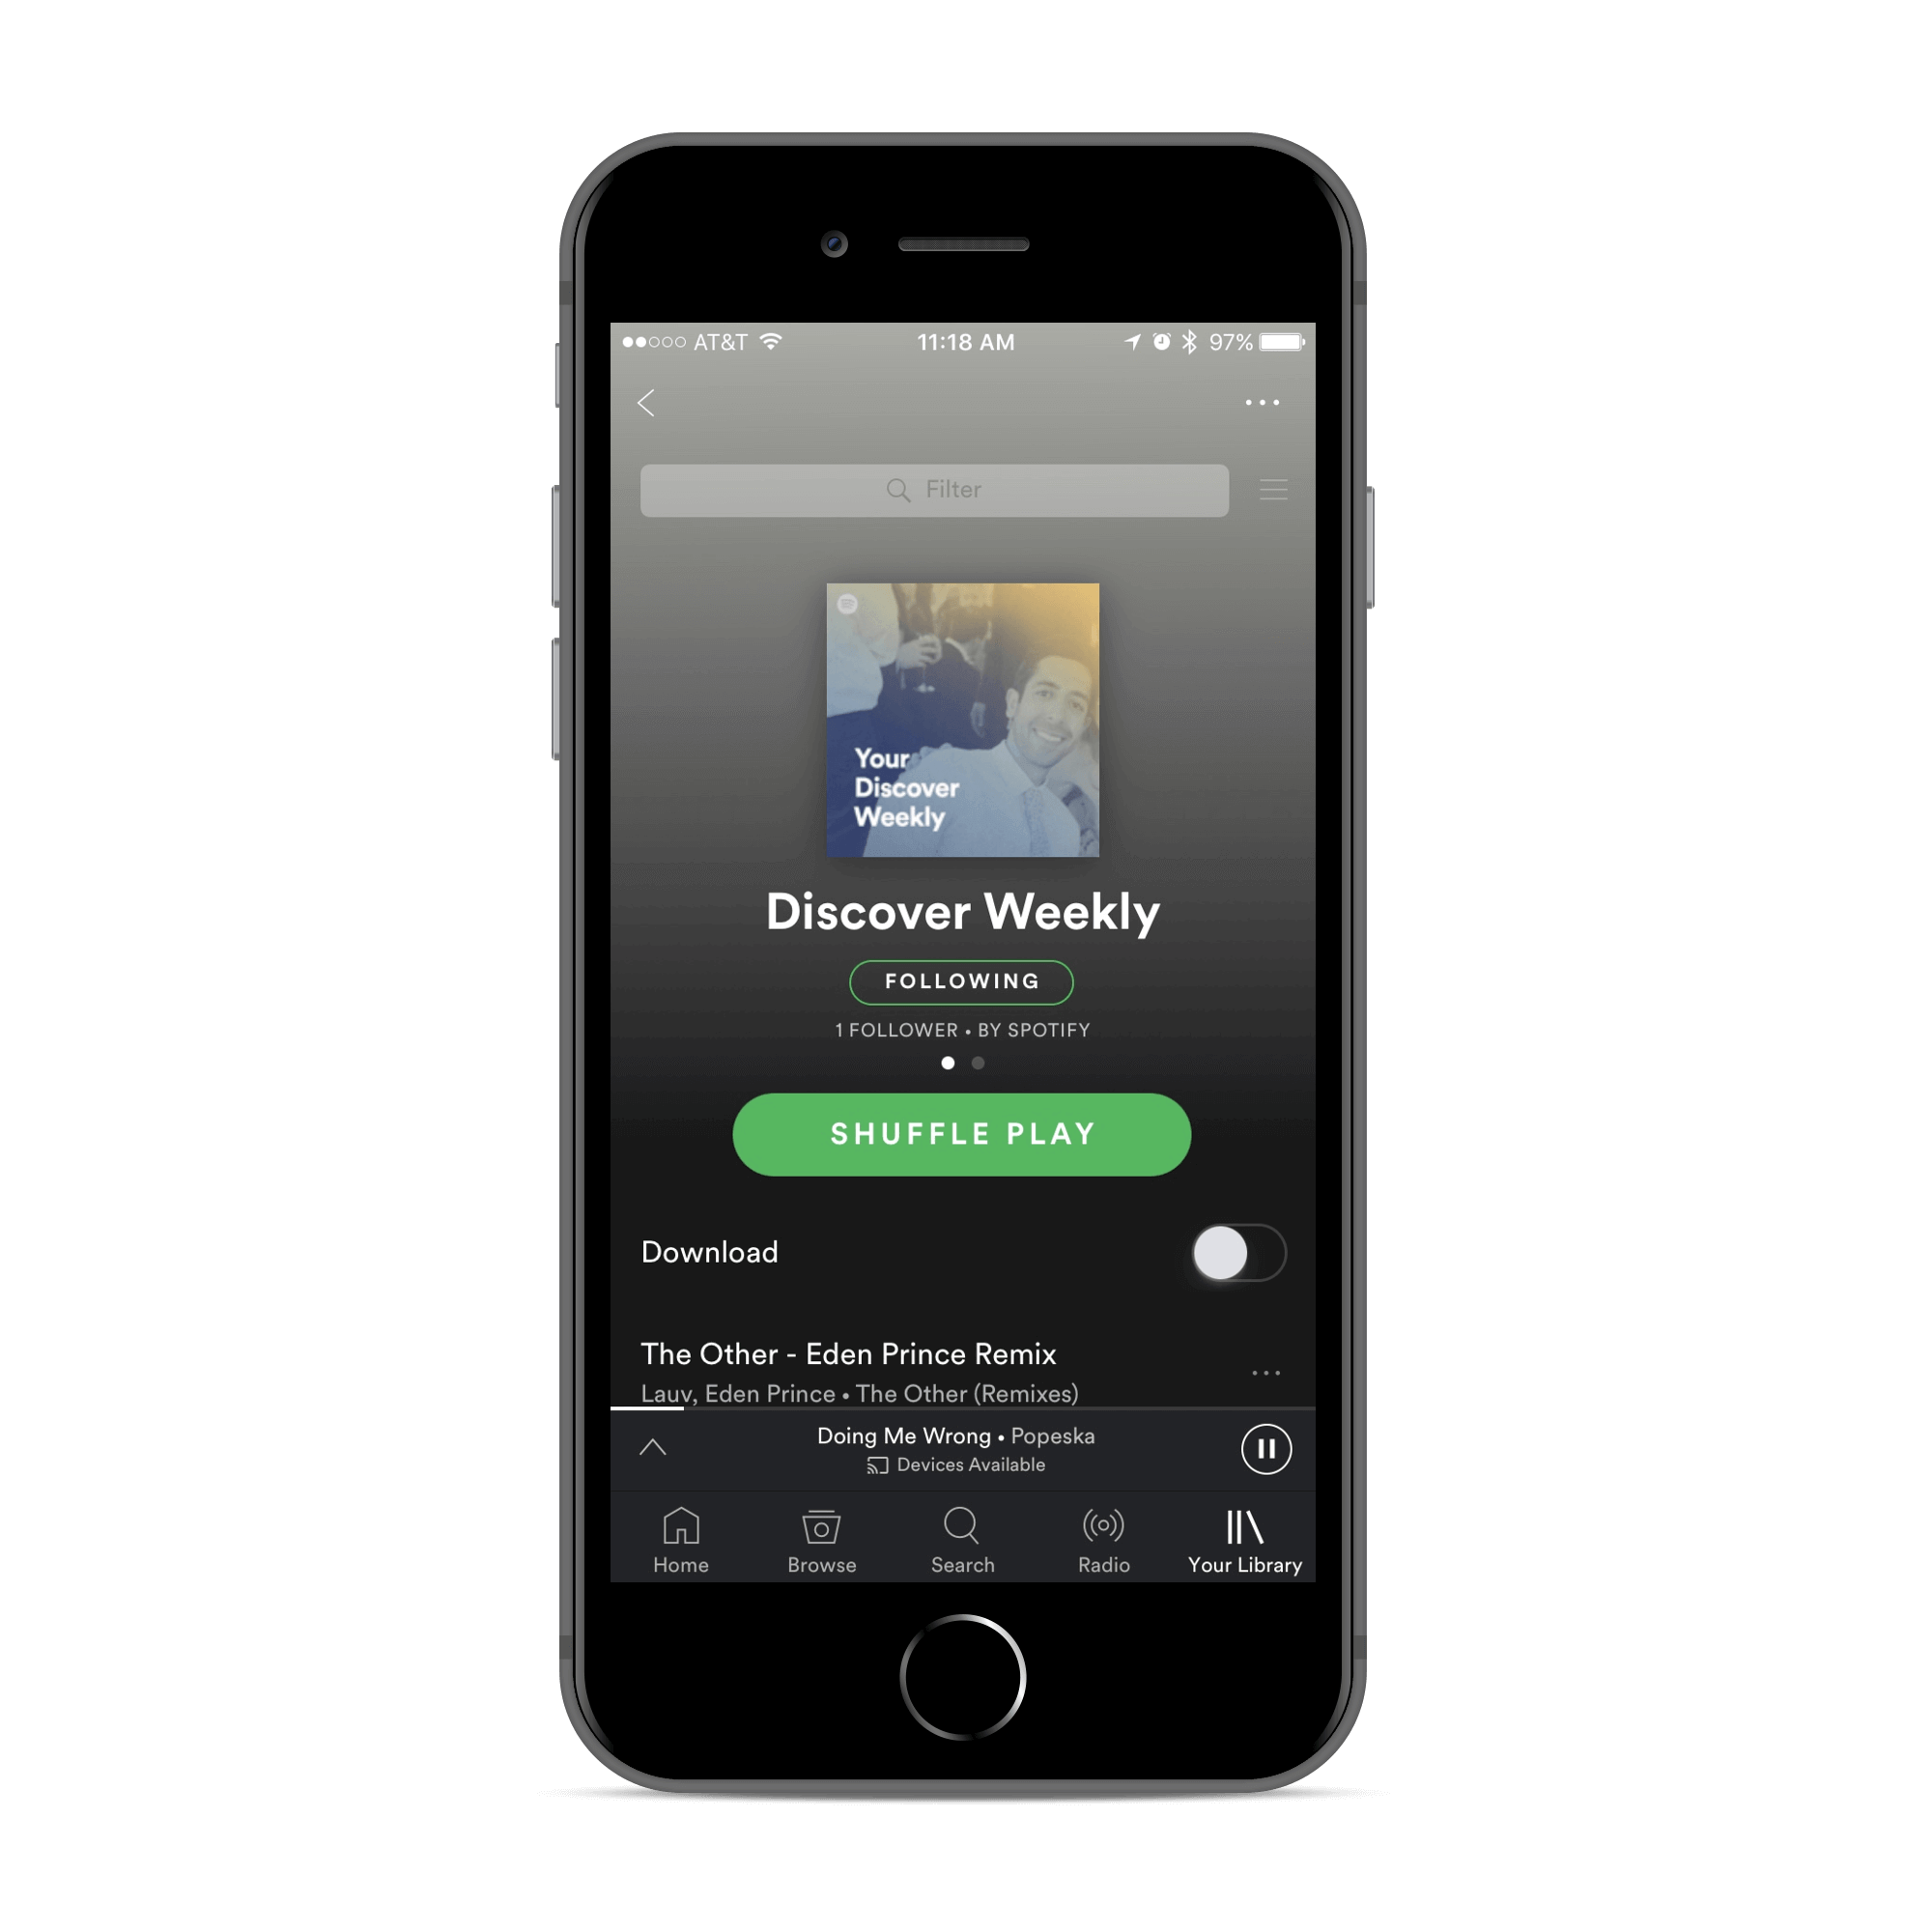 How to Make Your Own Music App Like Spotify [2019 Update]